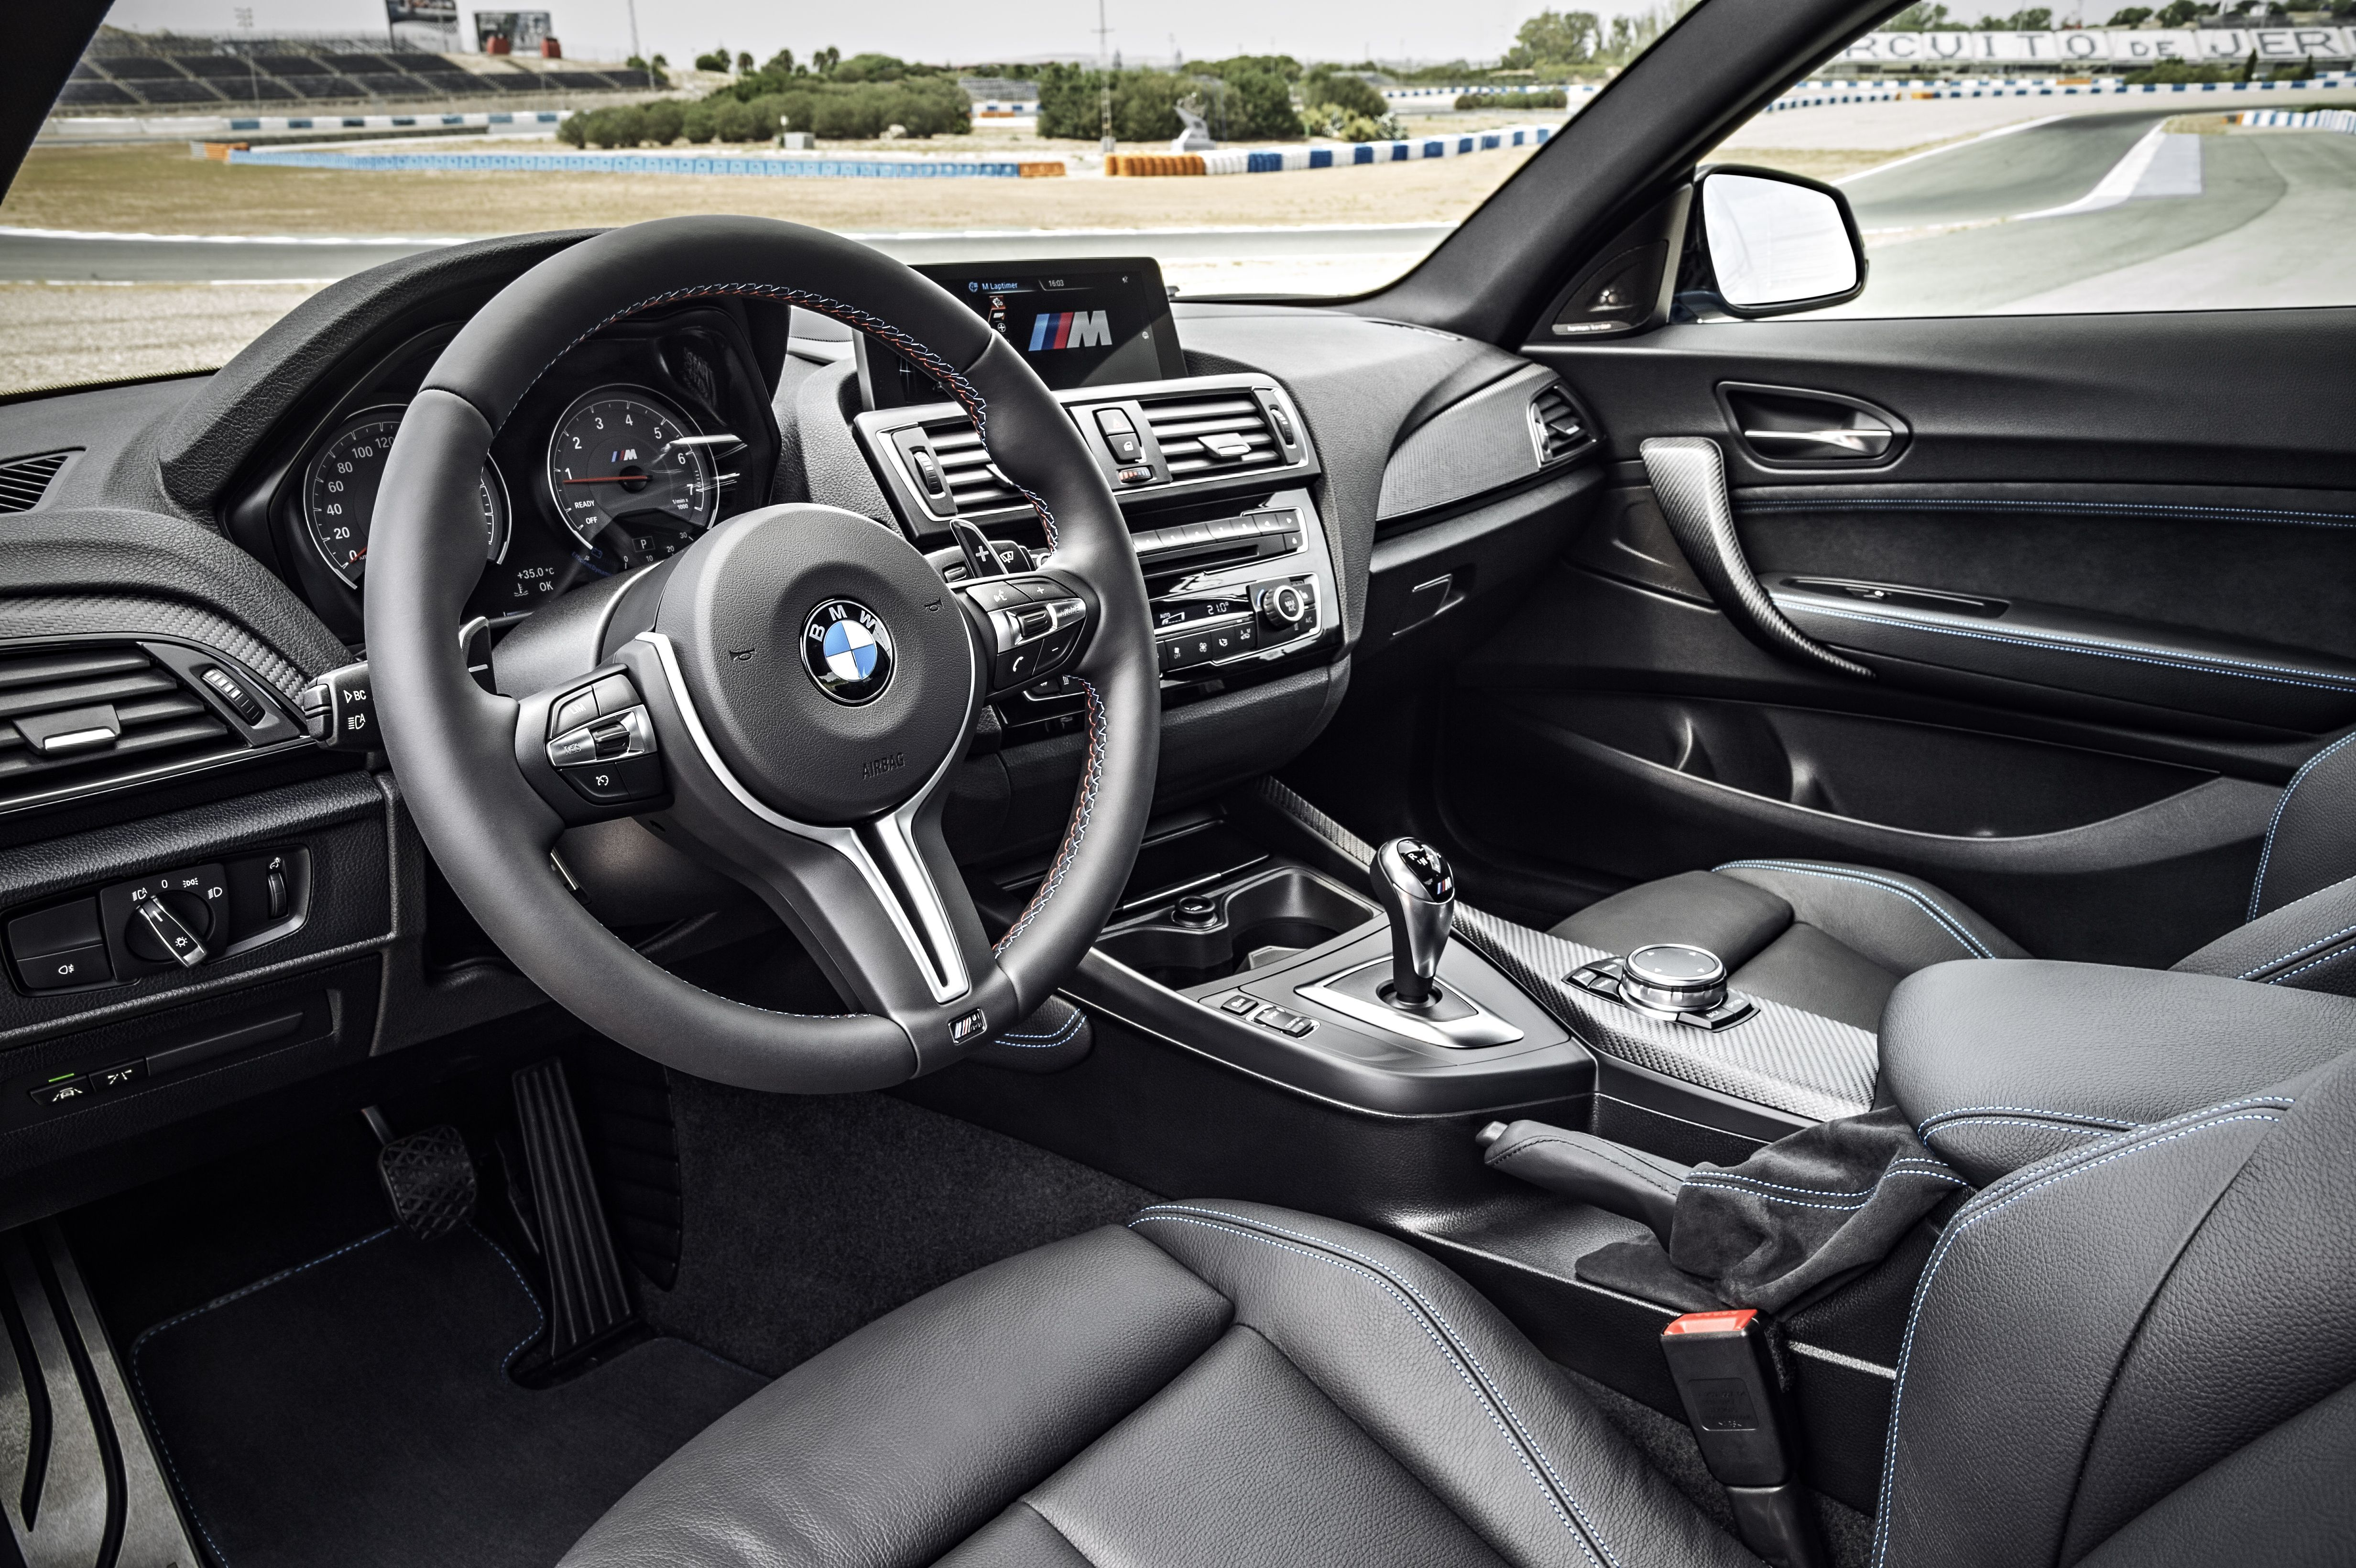 The All New BMW Is A Compact 365 Hp Sports Car For Daily Use